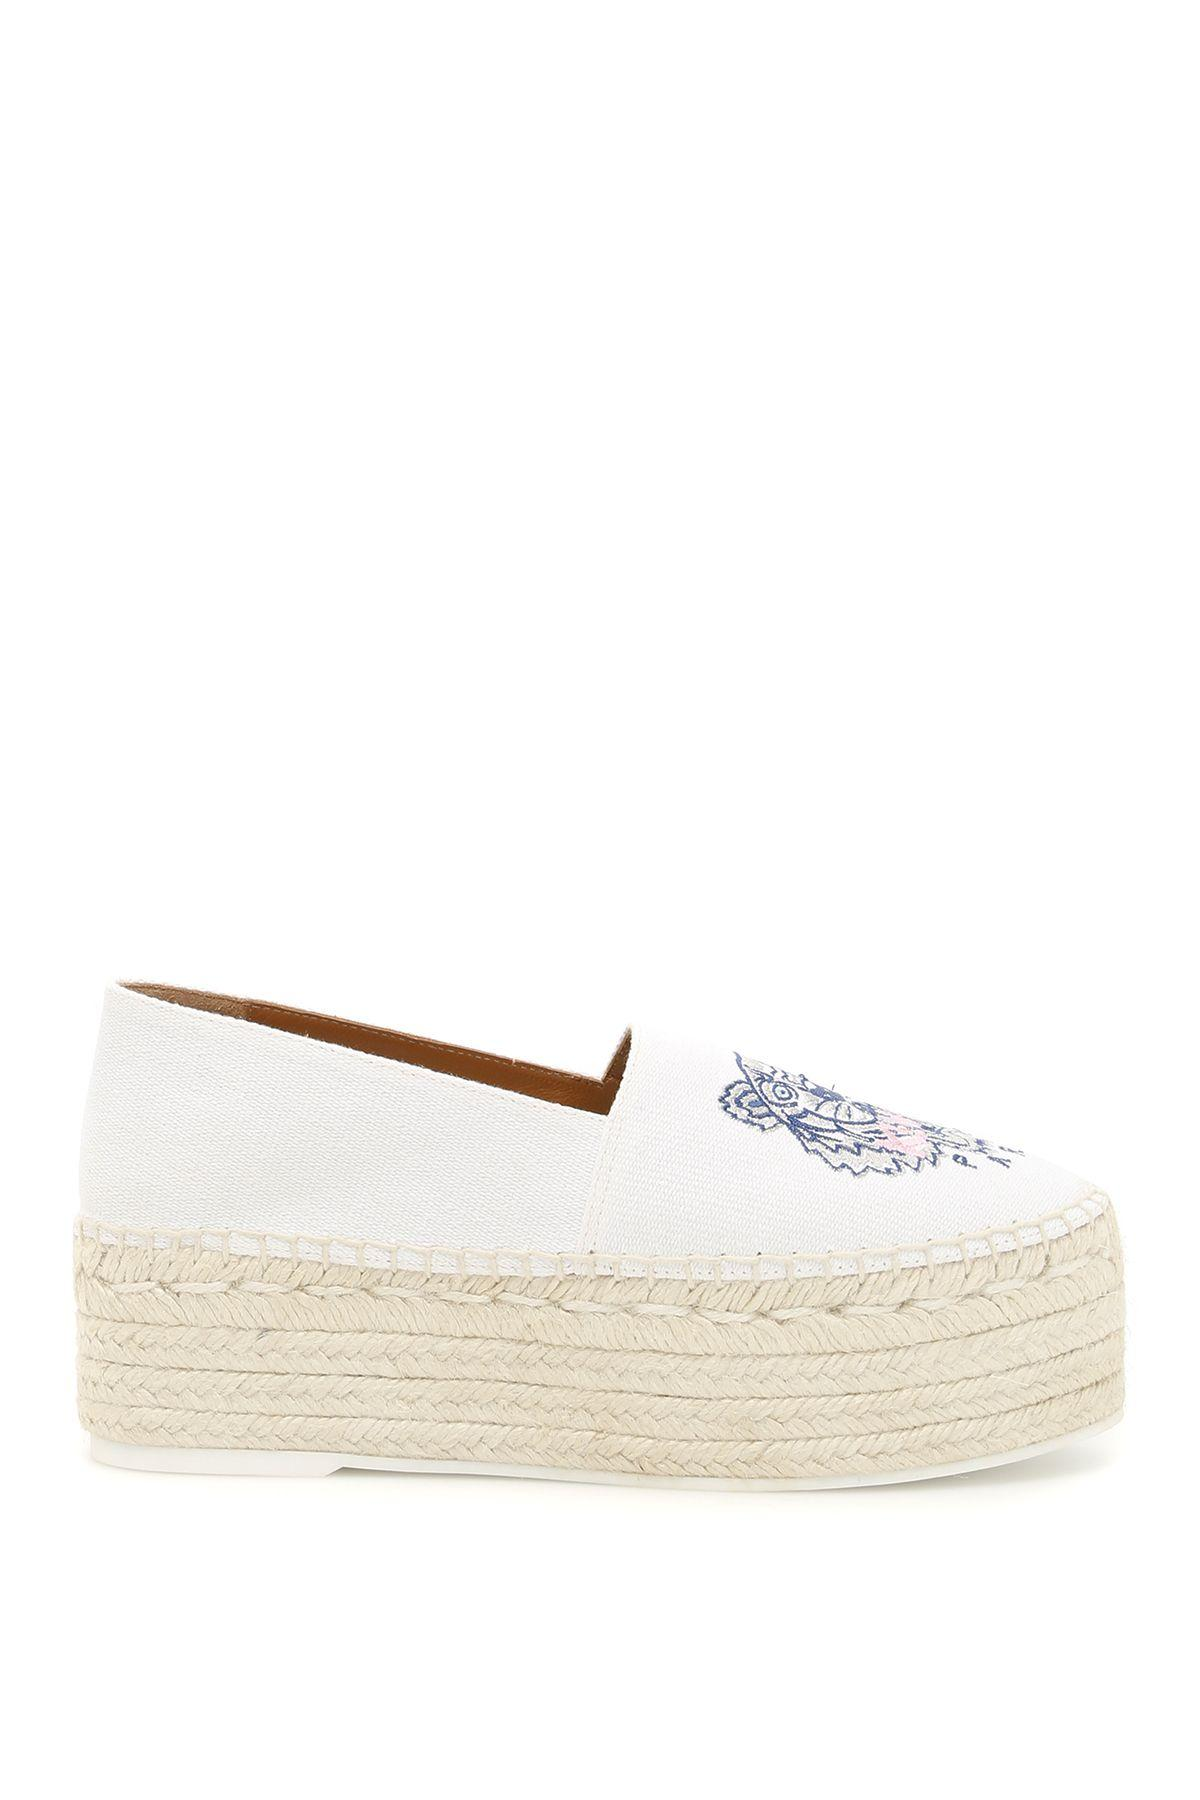 d7201293 Kenzo Women's Tiger Embroidered Platform Espadrille Flats In White ...